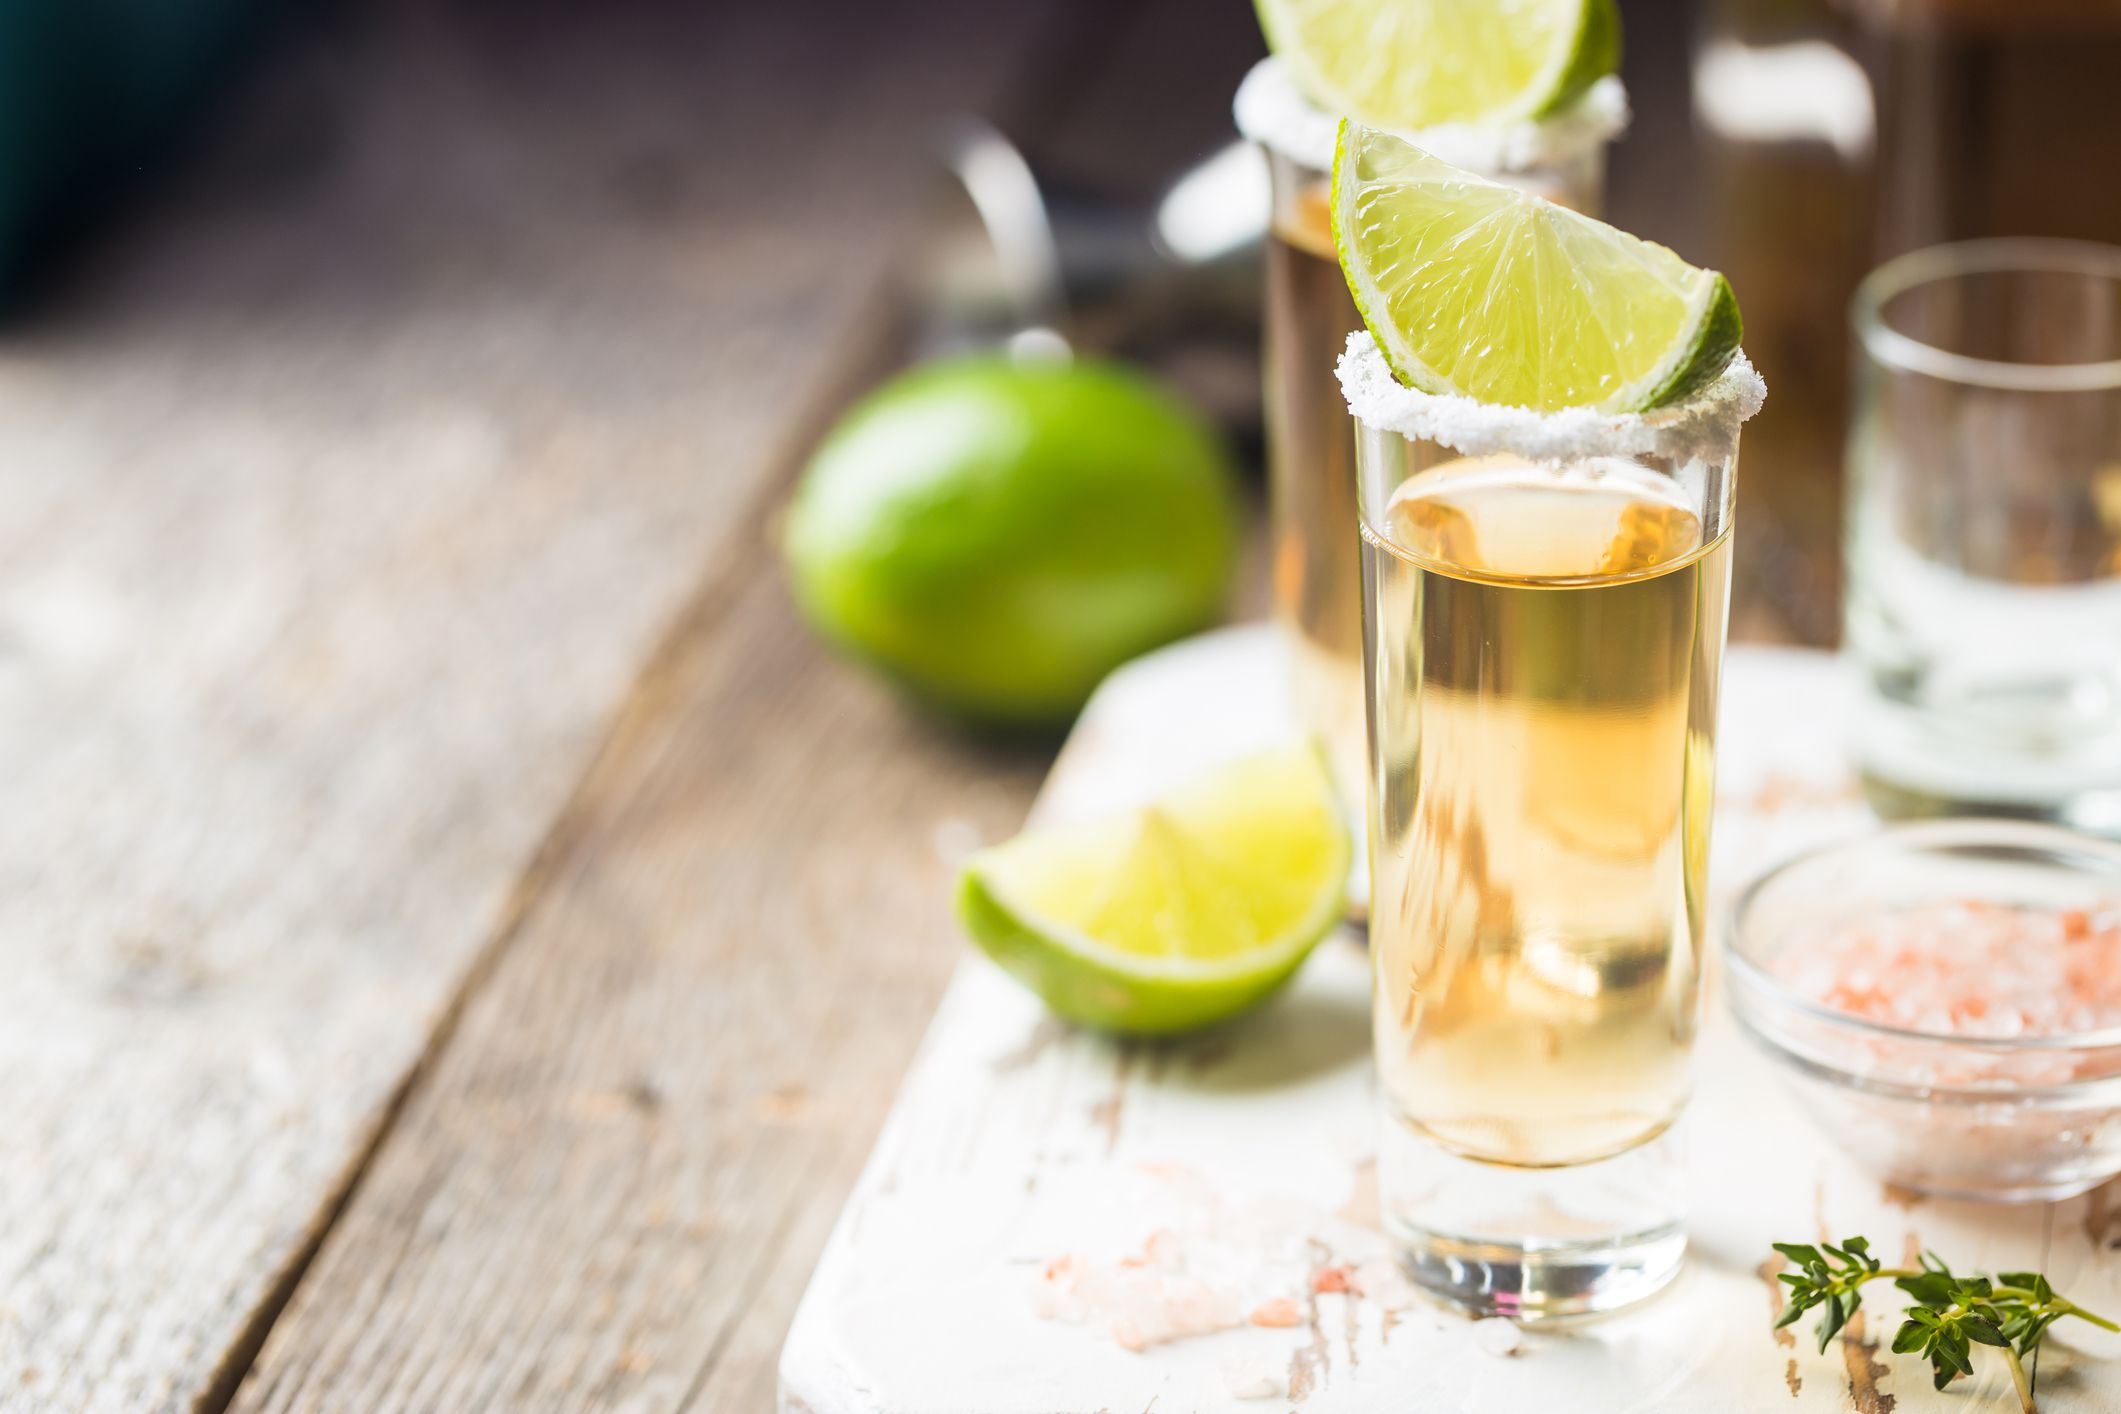 Global Tequila Market 2020 To Record Rise In Incremental Opportunity During The Forecast Period By 2026 photo